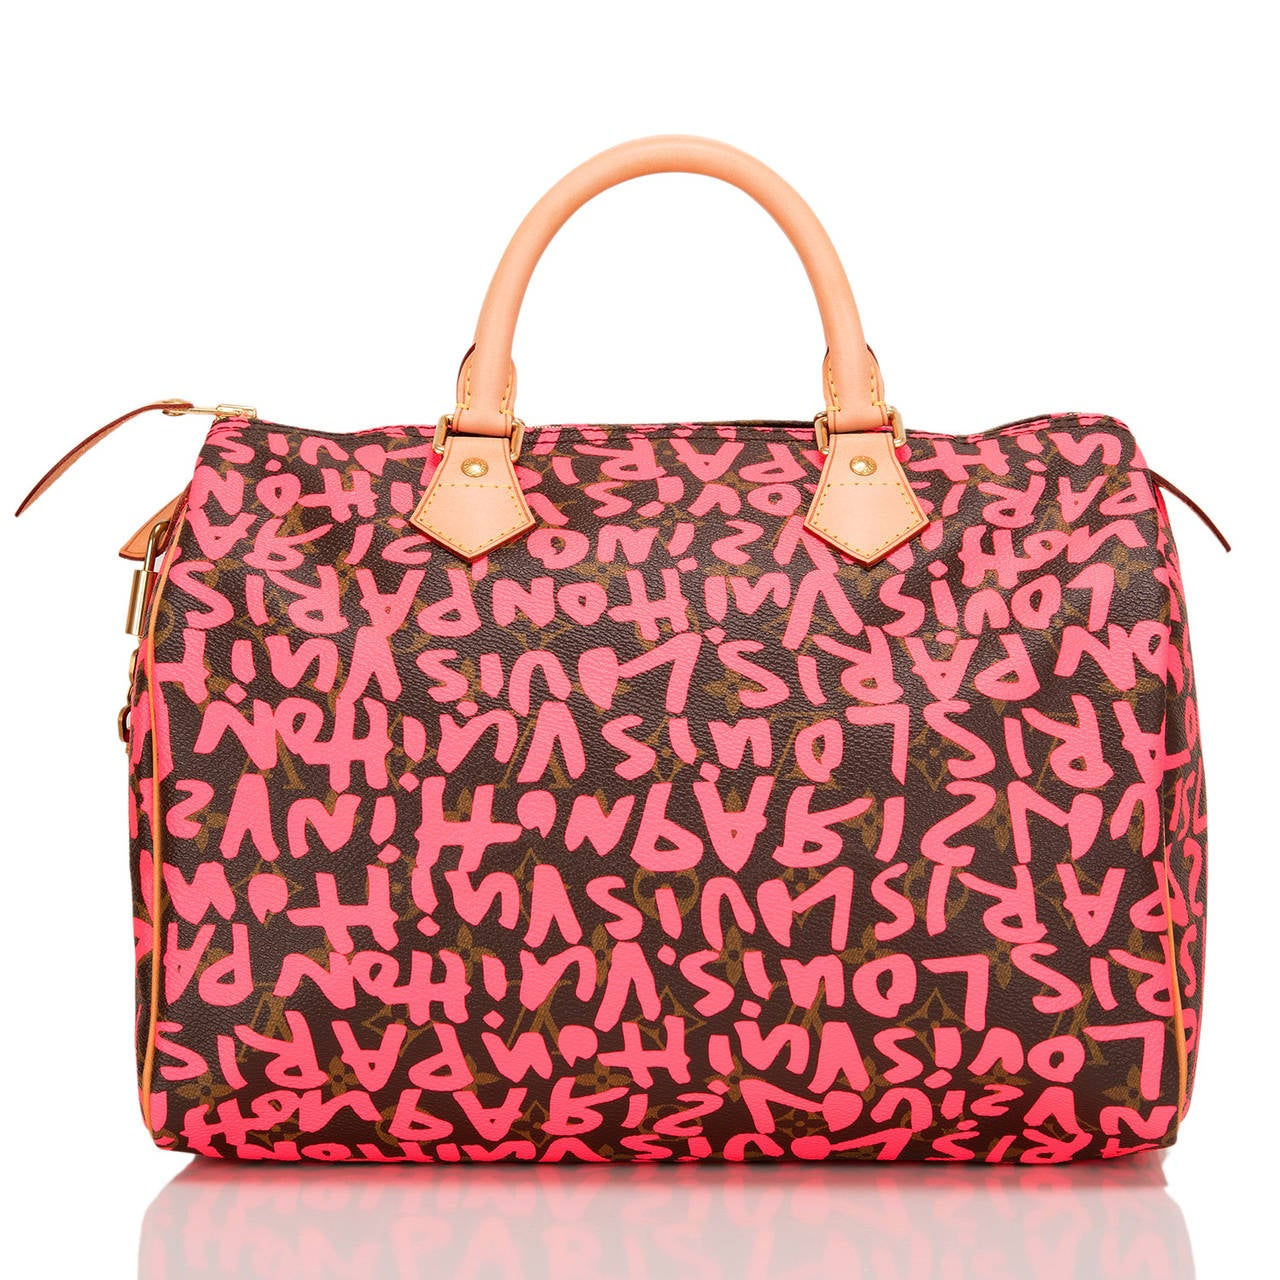 Louis Vuitton Fuchsia Pink Monogram Graffiti Speedy 30 In New Never_worn Condition For Sale In New York, NY